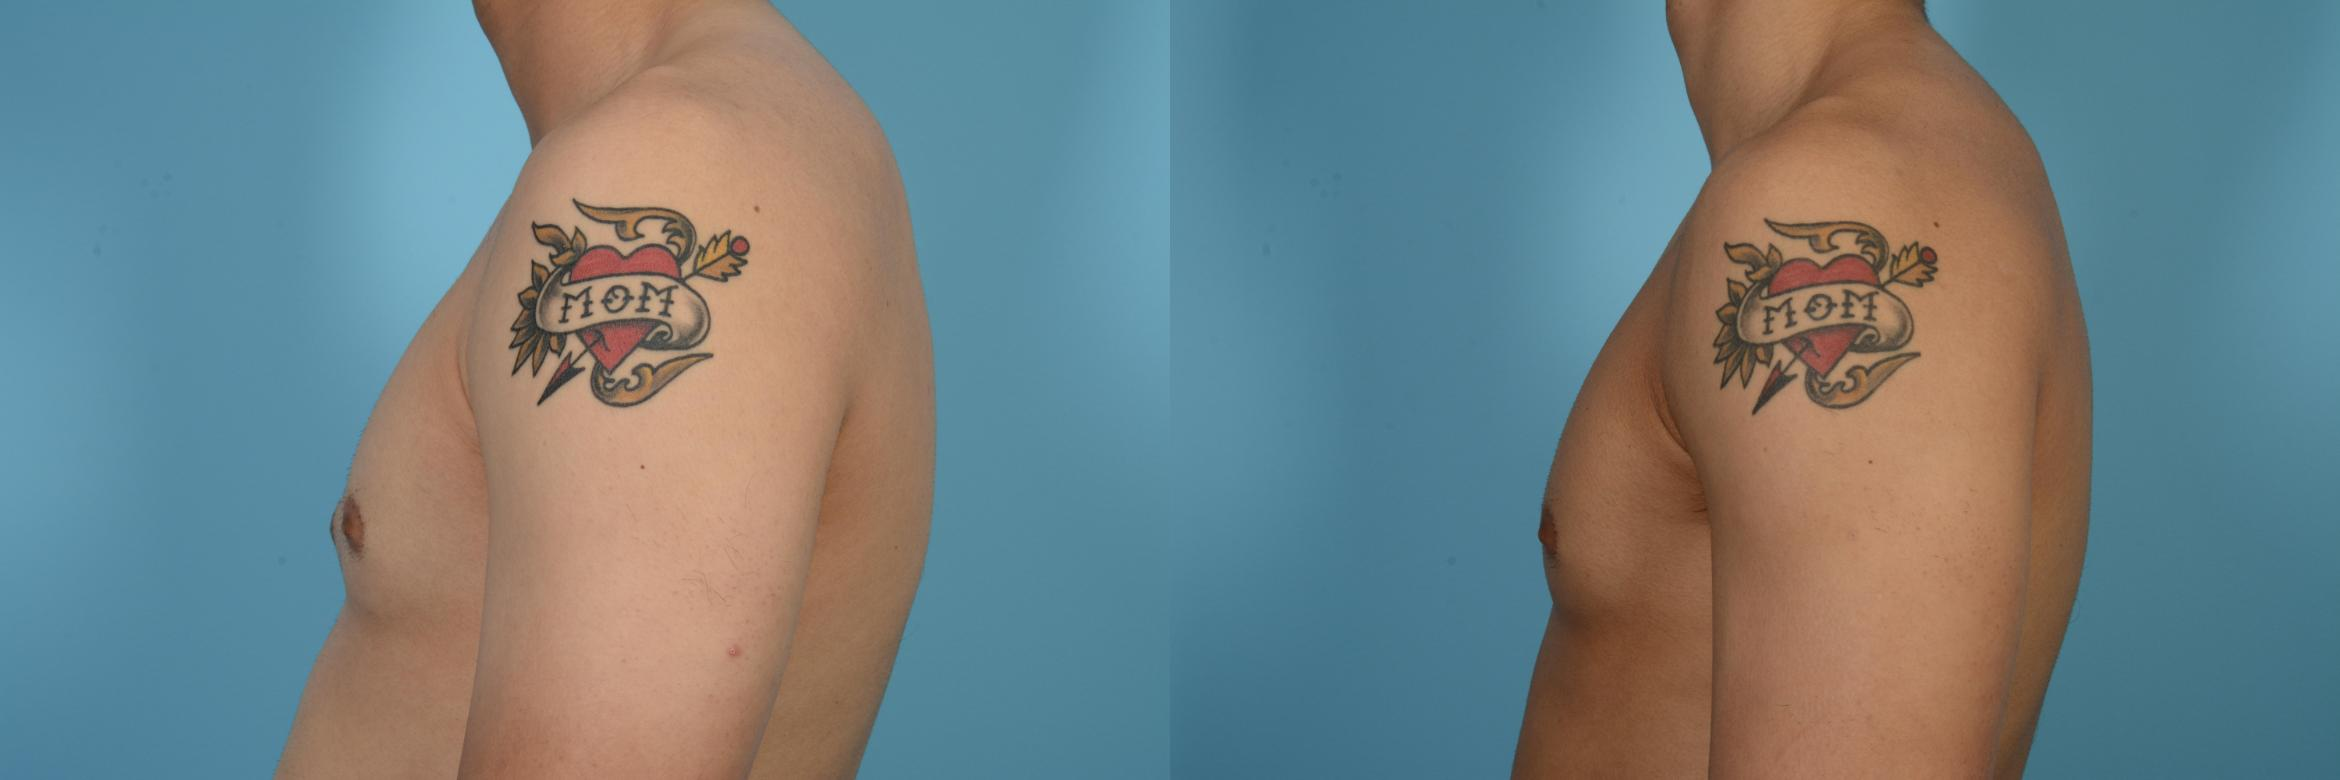 Male Breast Reduction (Gynecomastia) Case 517 Before & After View #1 | Chicago, IL | TLKM Plastic Surgery